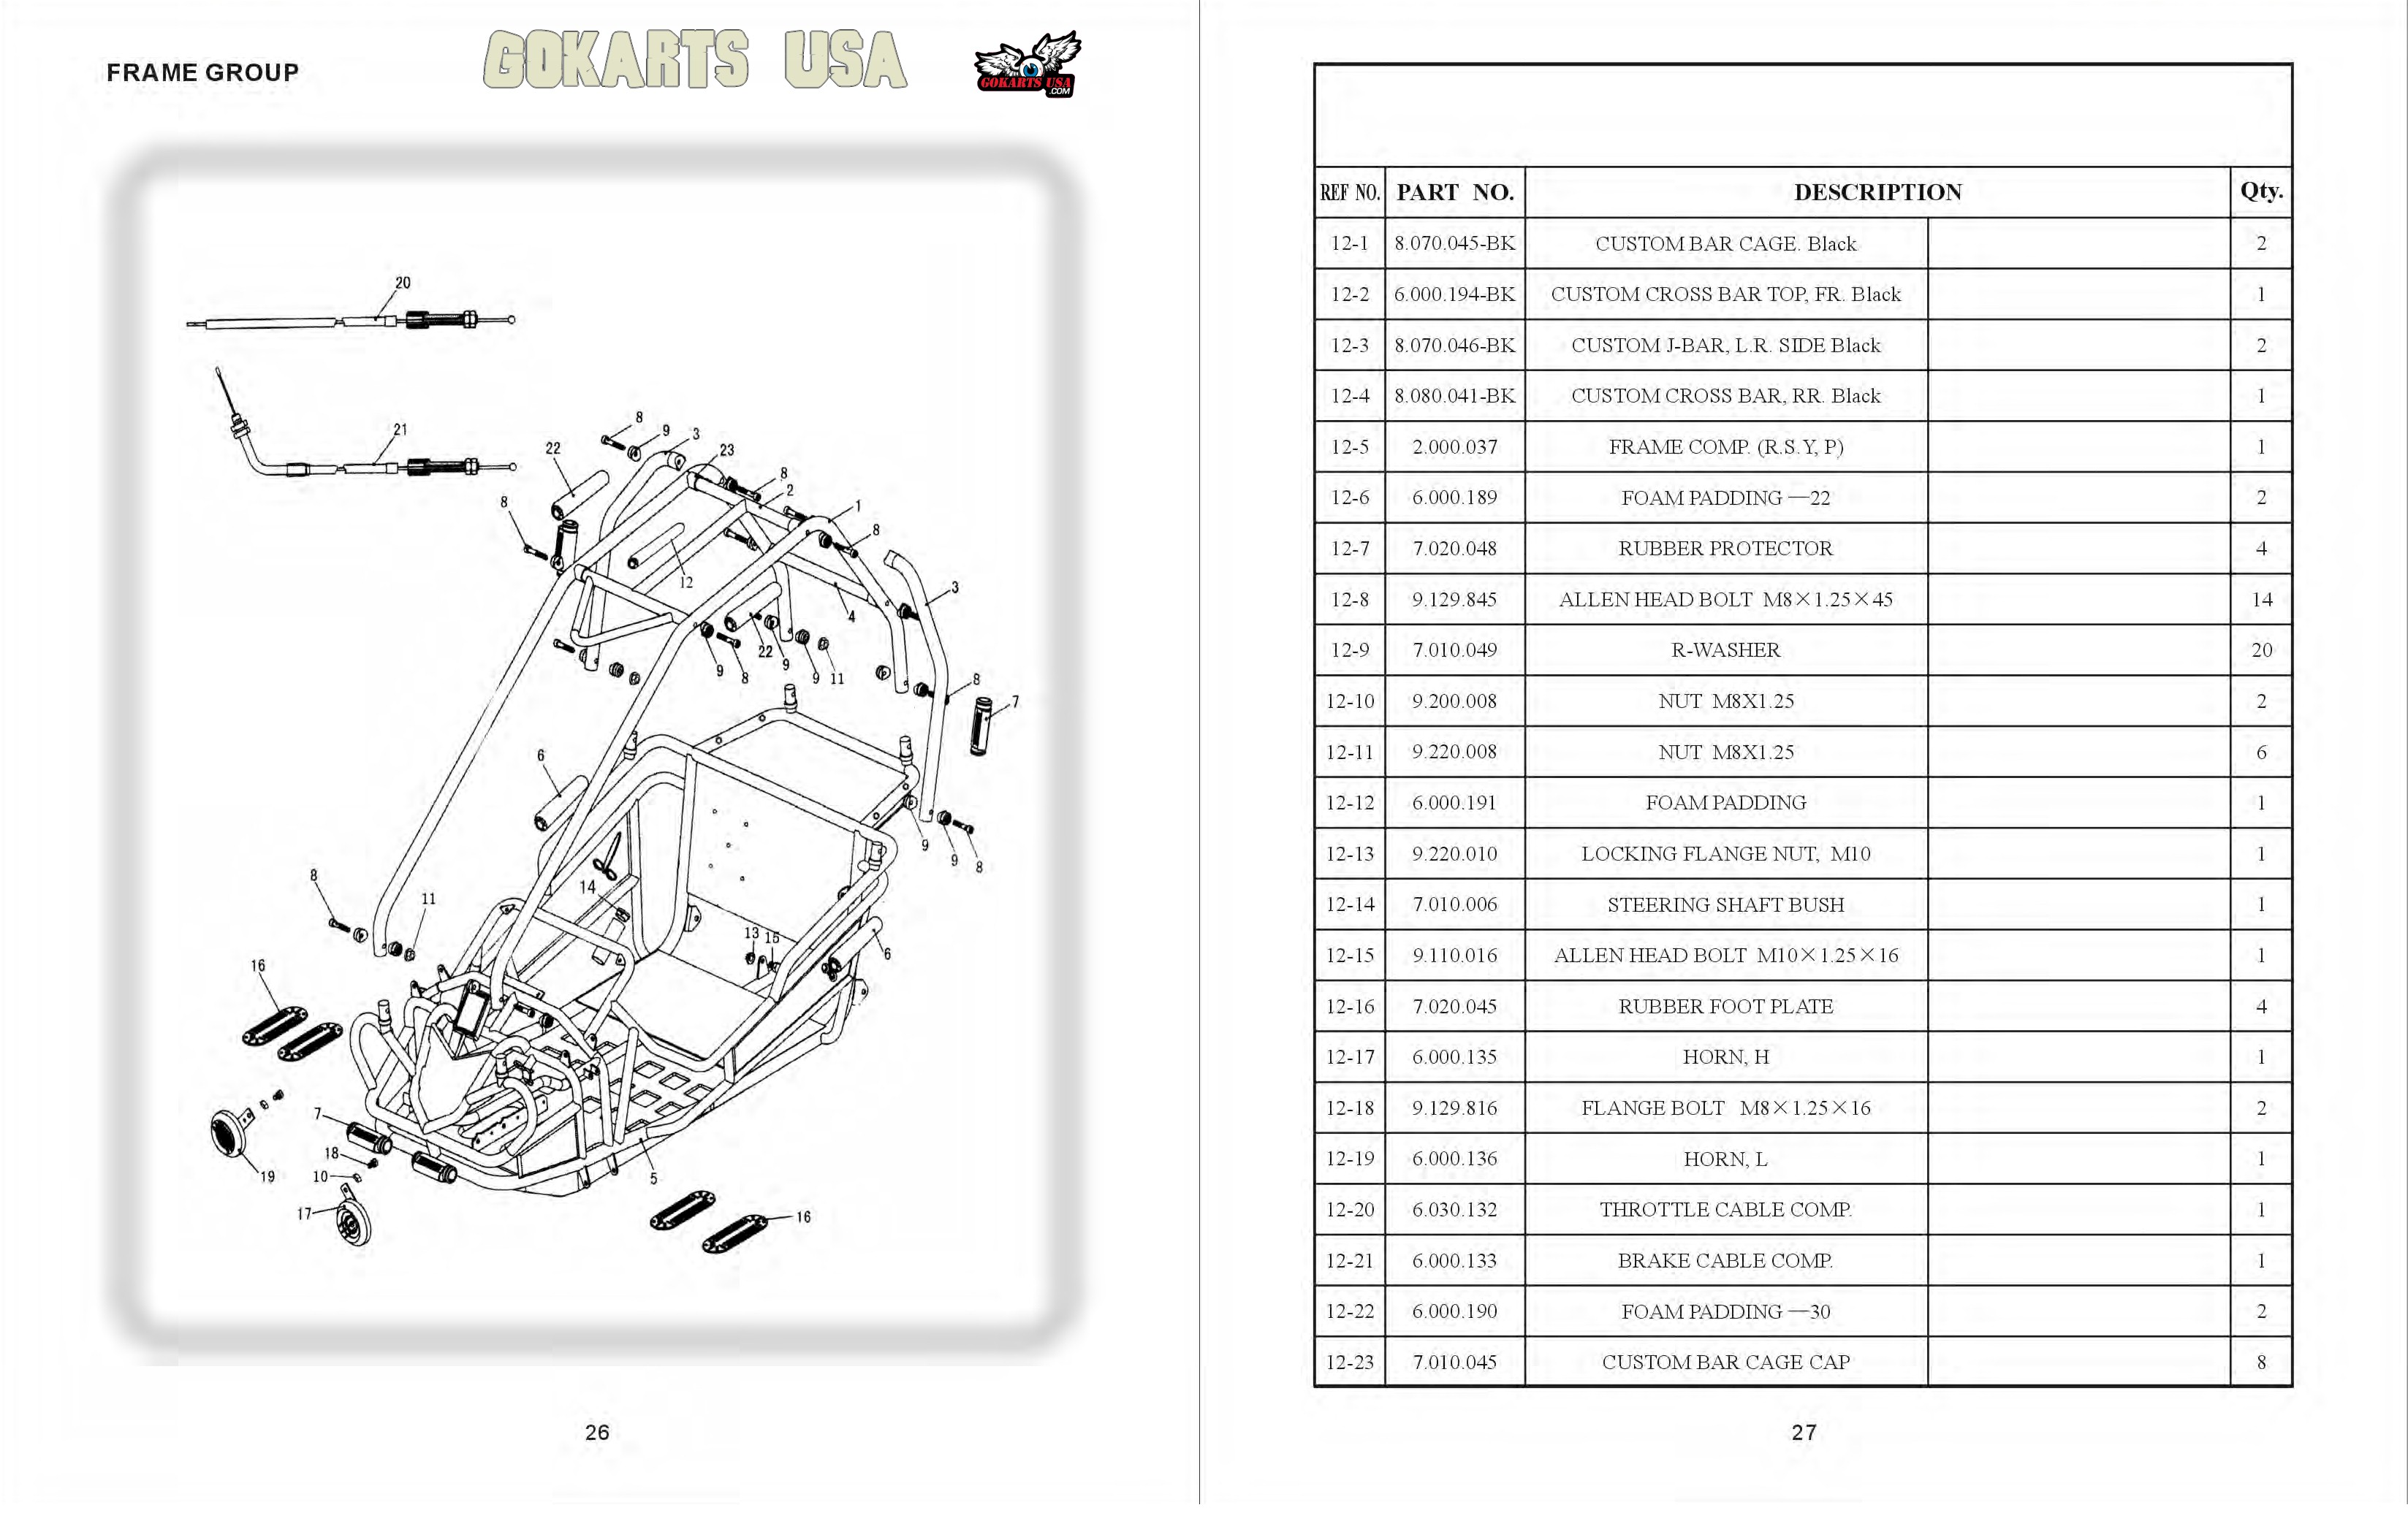 Hammerhead Go Kart Parts Diagram Schematic Wiring On Engine Besides 1212 Gy150 301 0066 Gy6 150 Oil